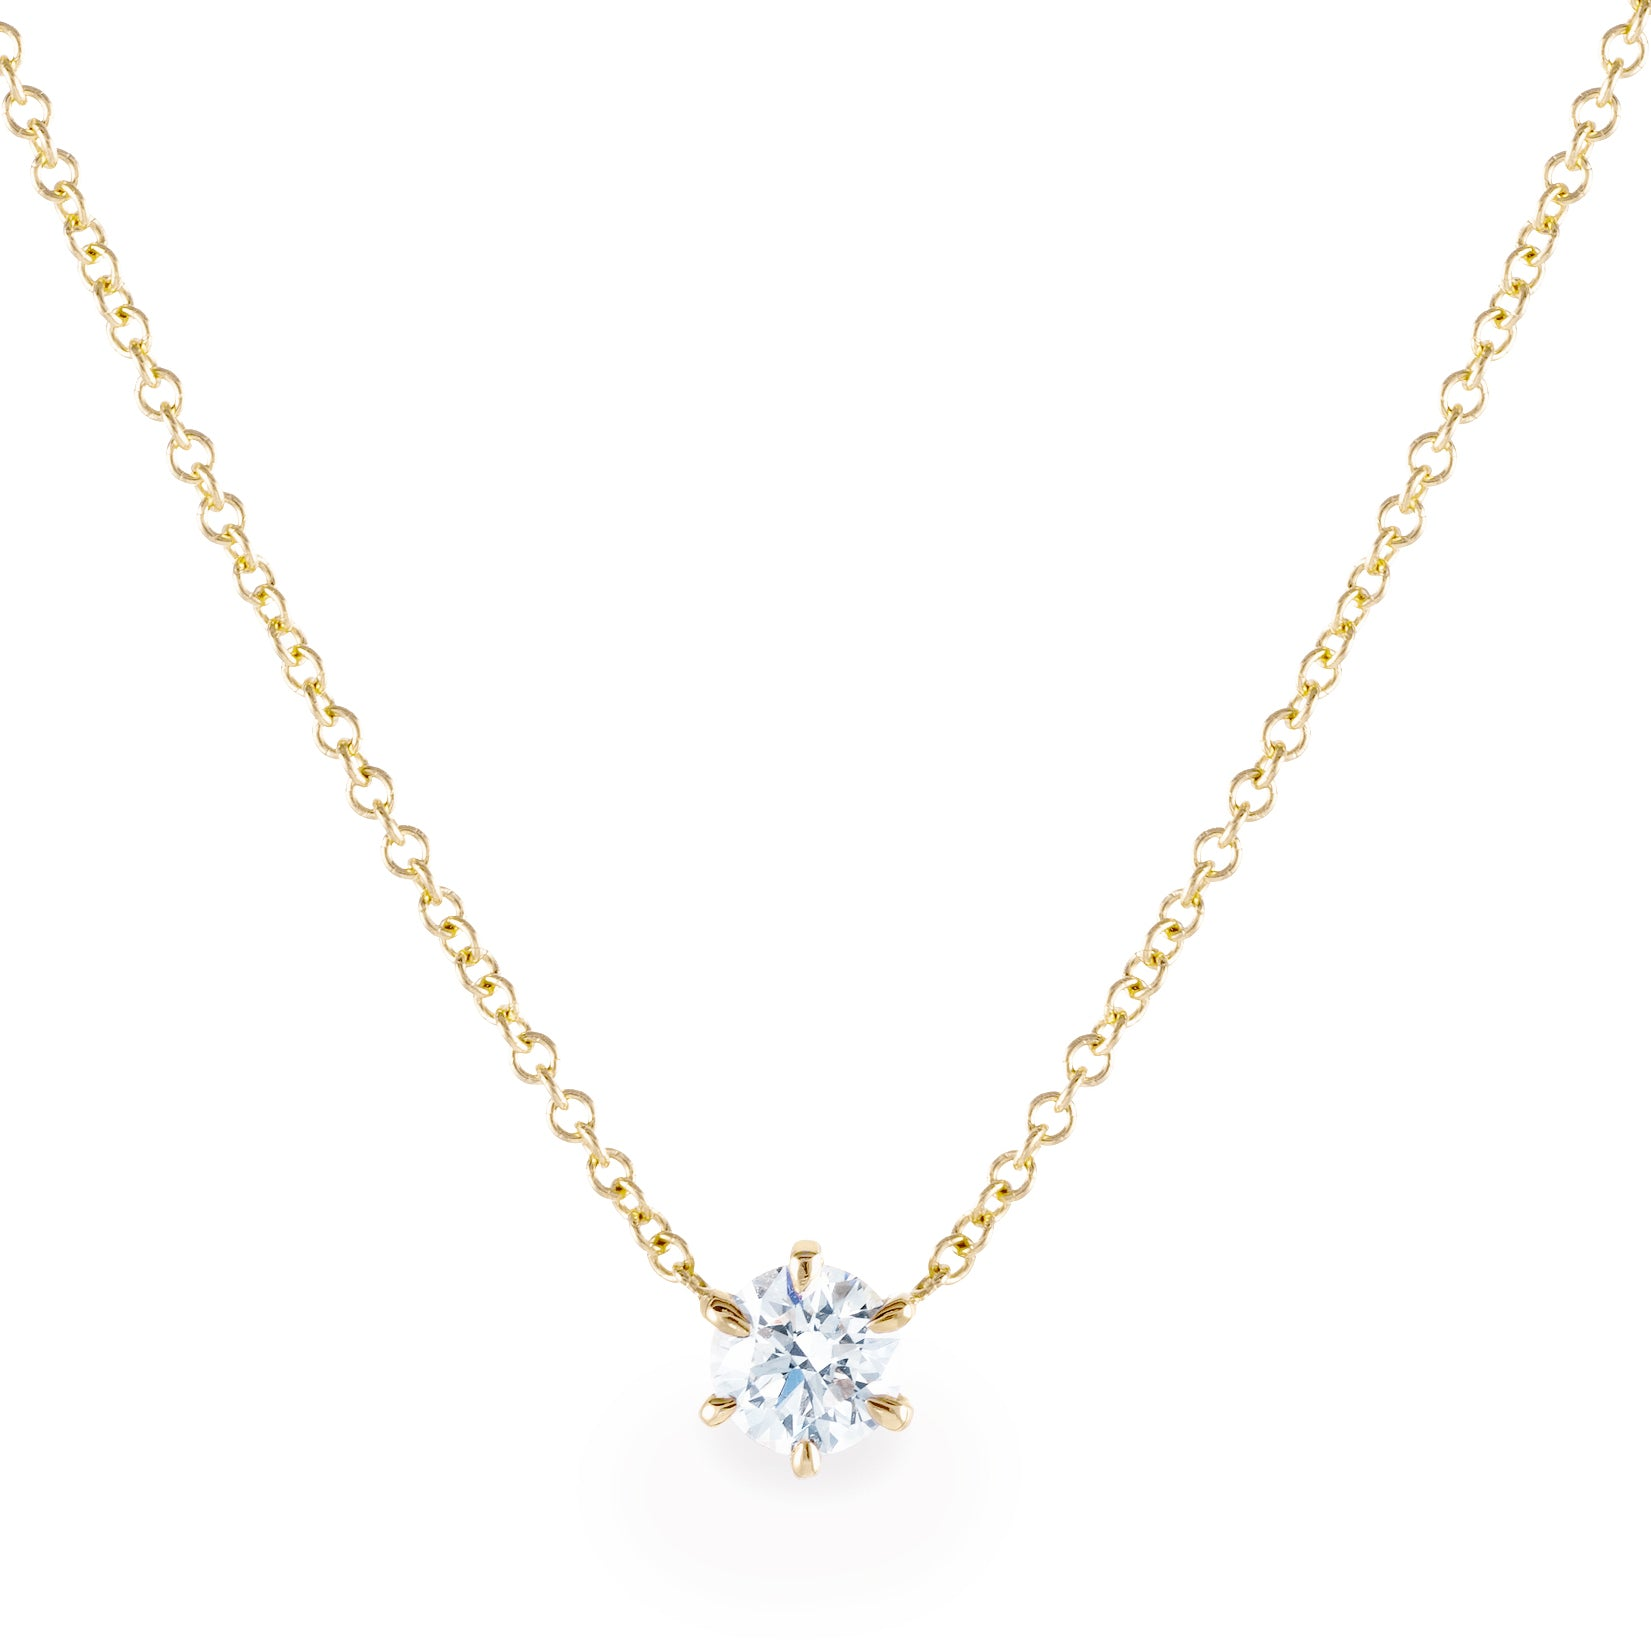 arrow necklaces for pendant zircon glass jewels product brilliant wholesale popular flower cut women clear elegant cz necklace heart and with square